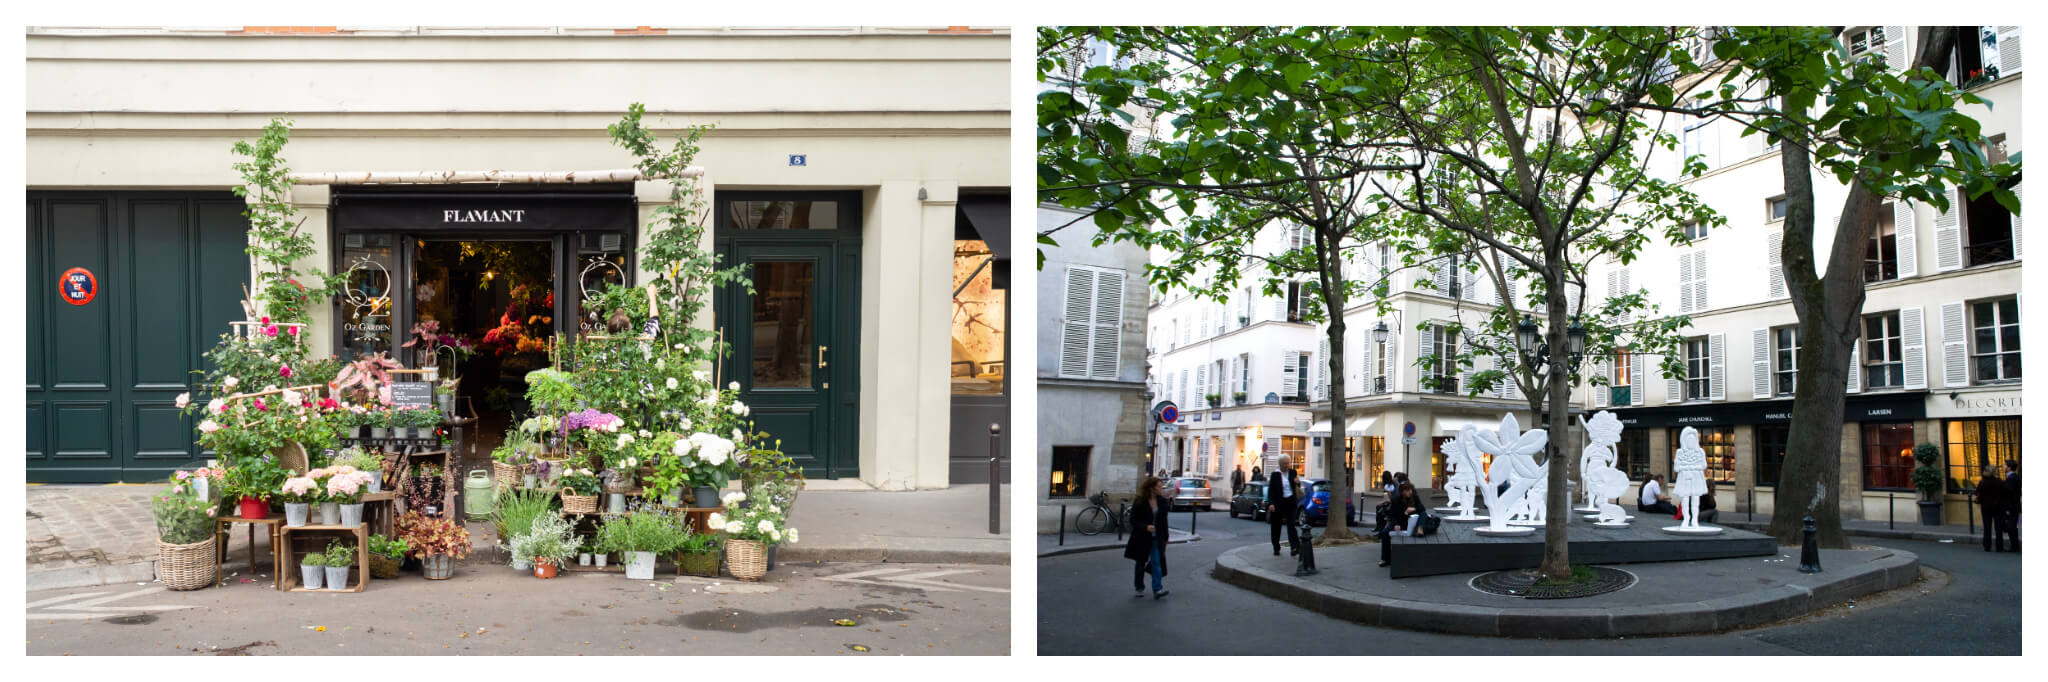 Left: A flower shop on the street in Paris' left bank near Square Paul-Langevin, right: Square Paul-Langevin on a spring day in Paris, with green leaves in the trees and people walking on the streets.